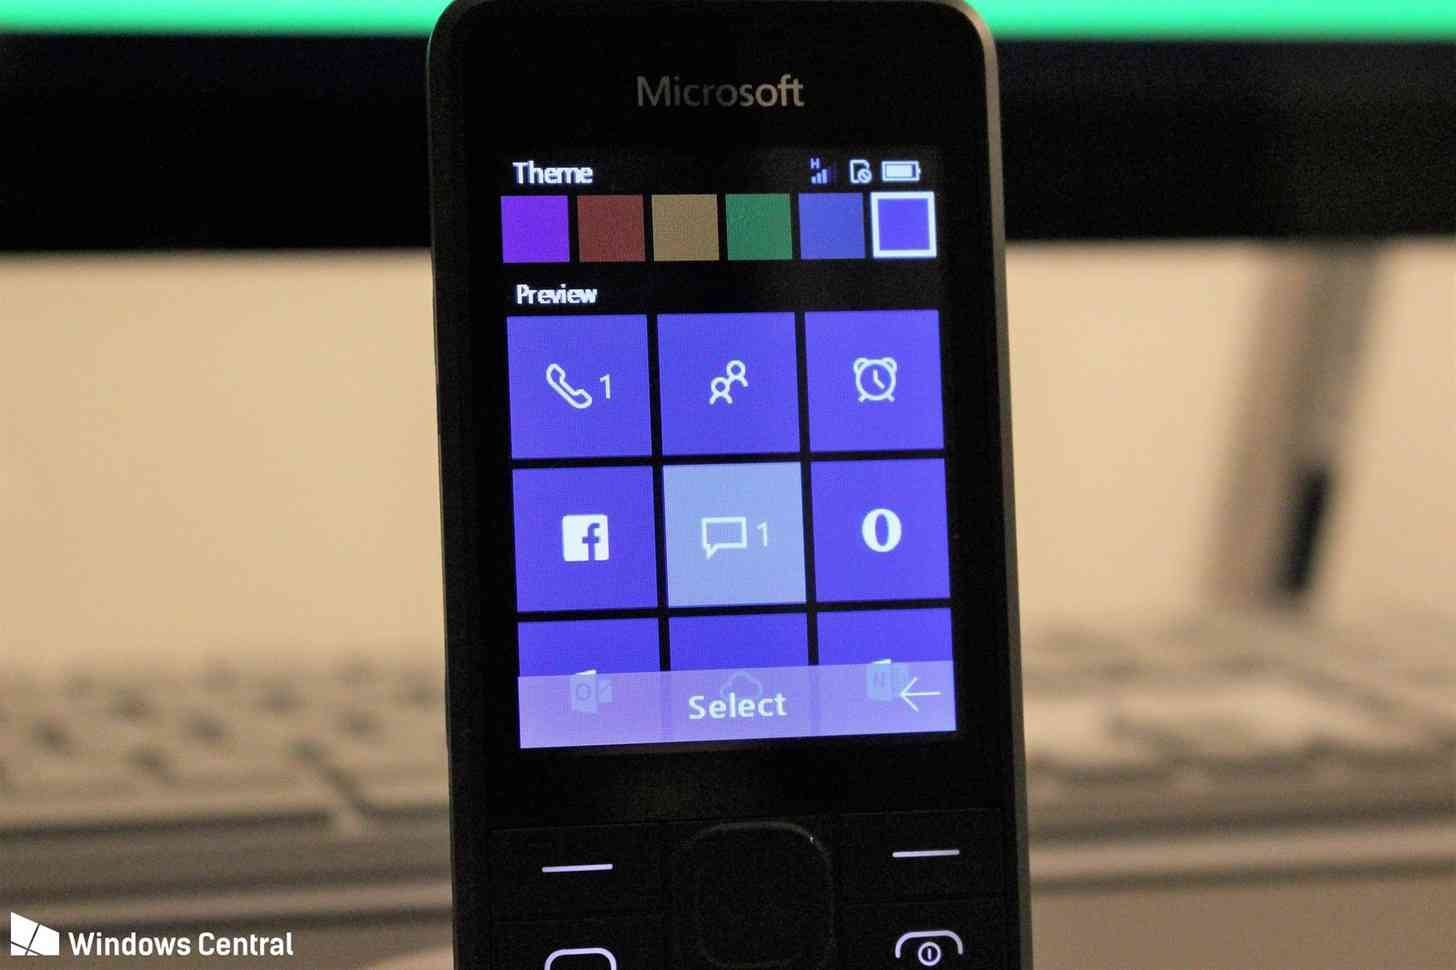 Microsoft RM-1182 feature phone software